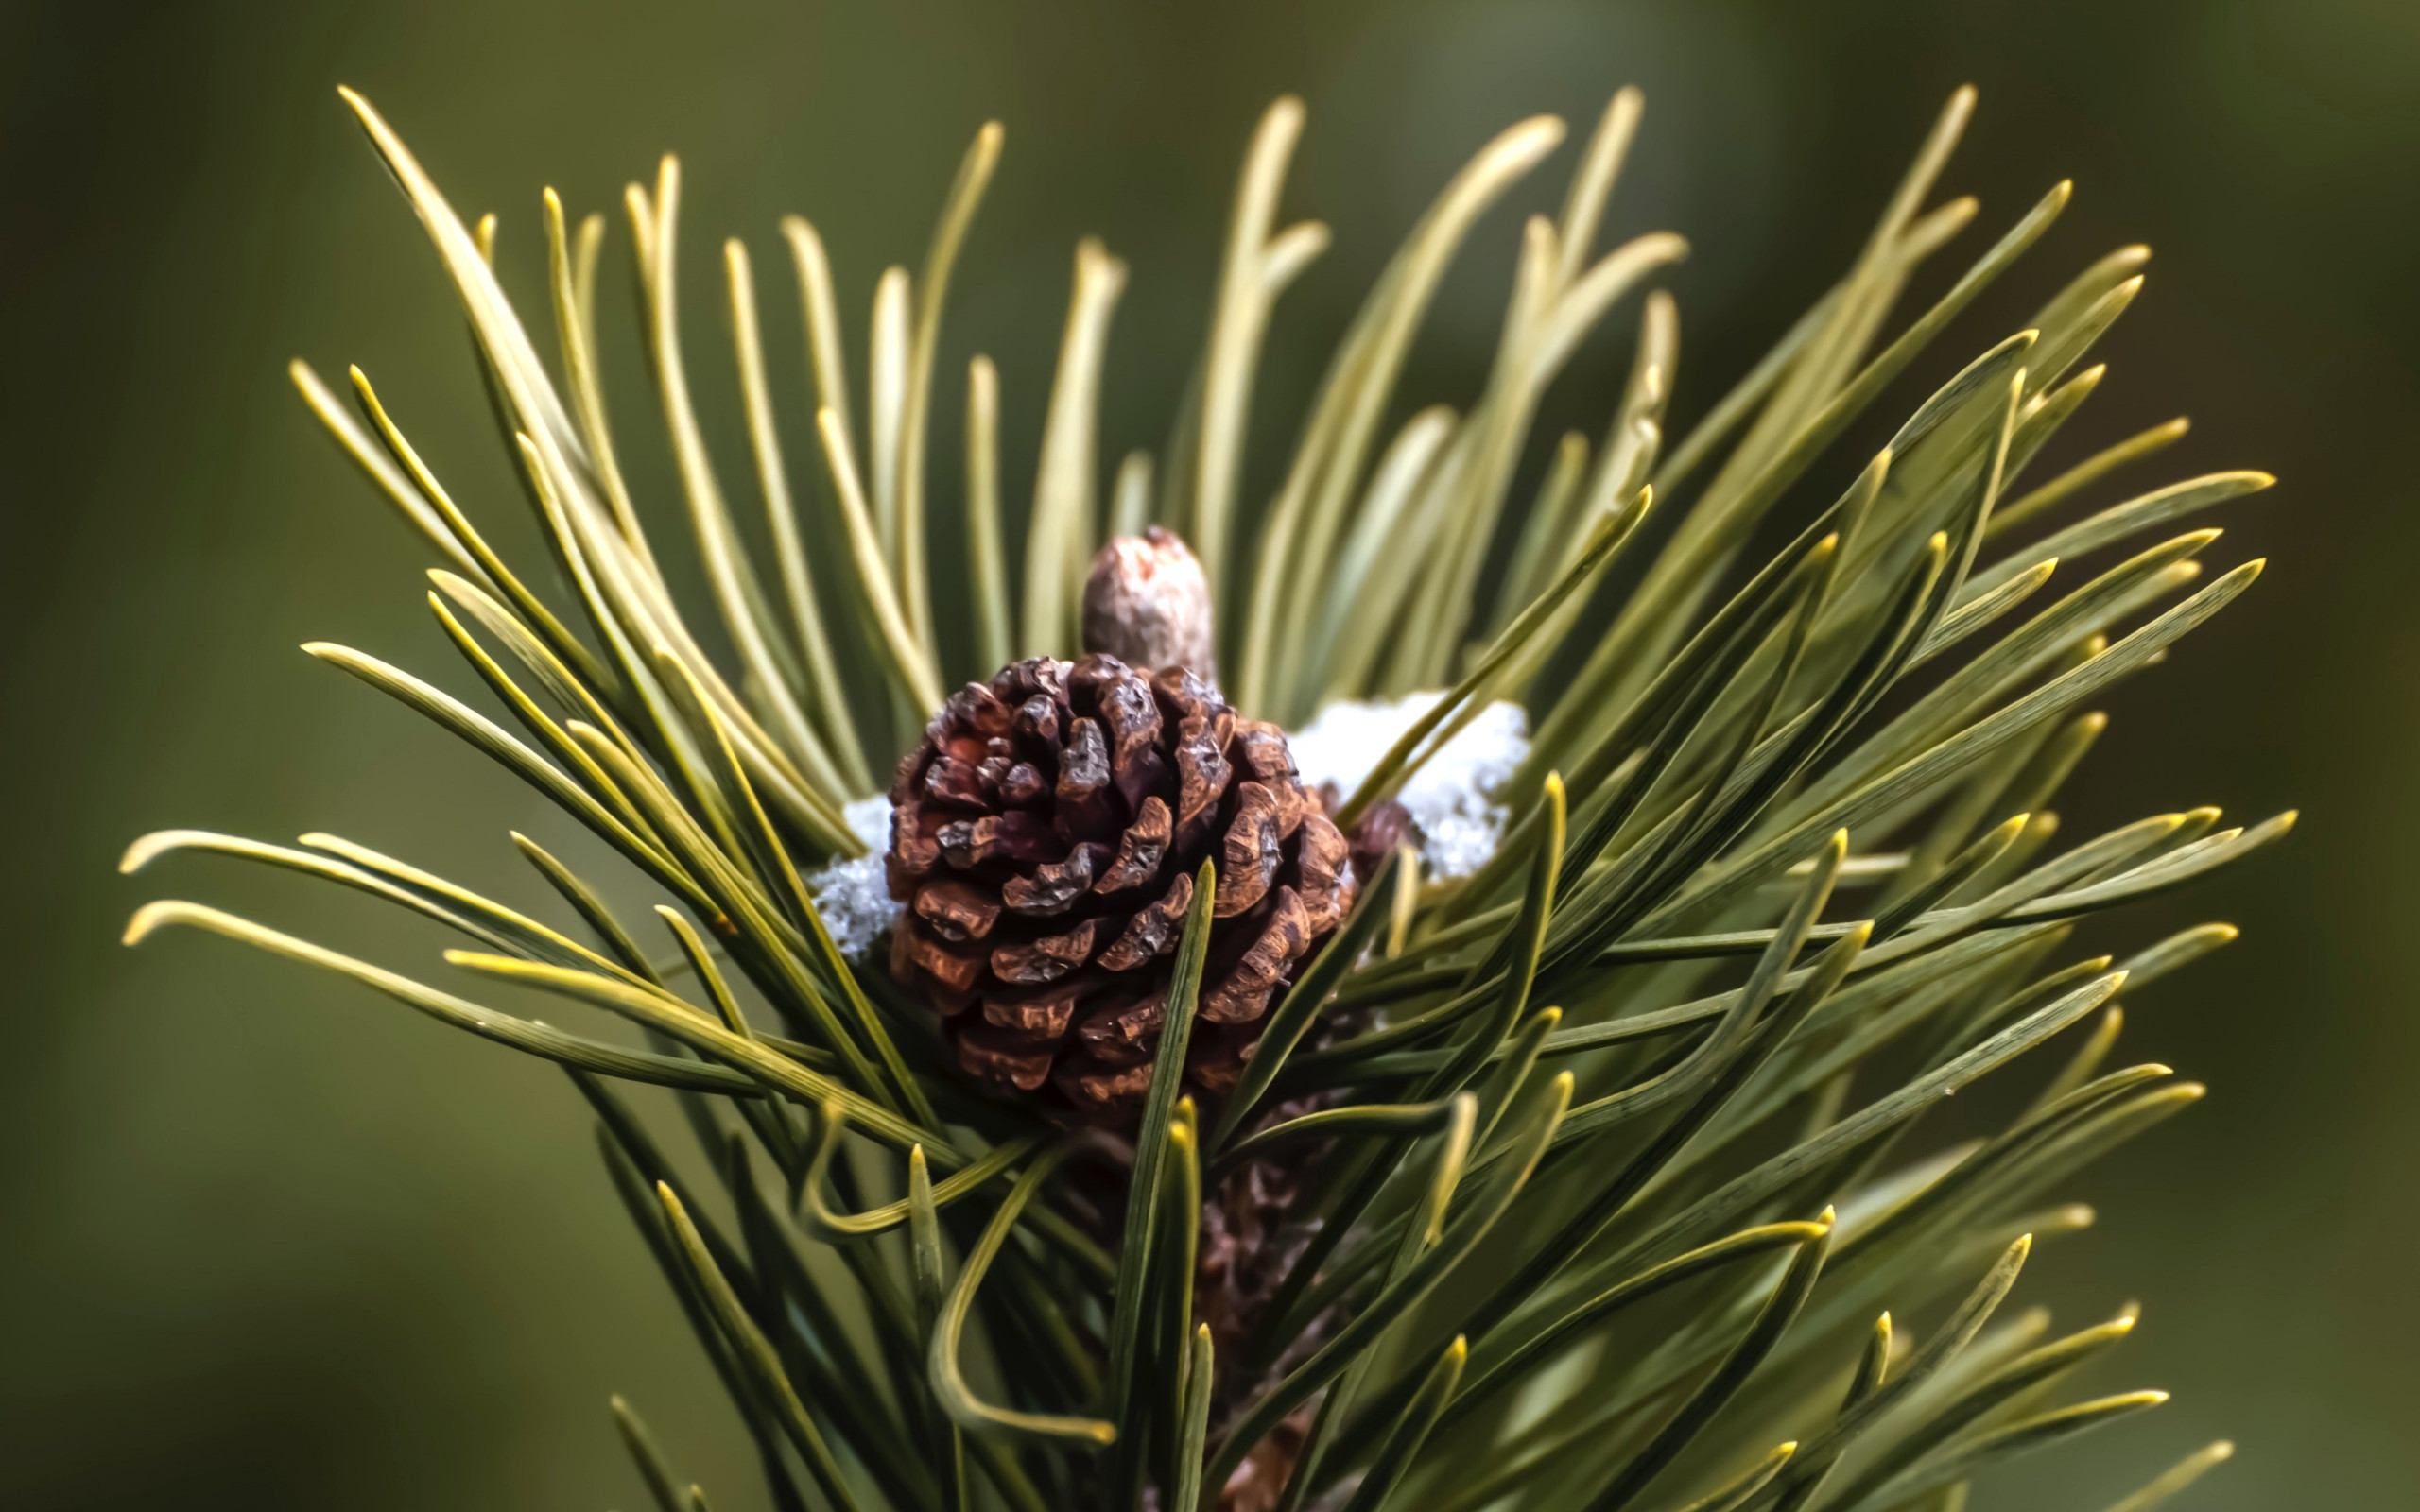 Cone and pine needles | 2560x1600 wallpaper